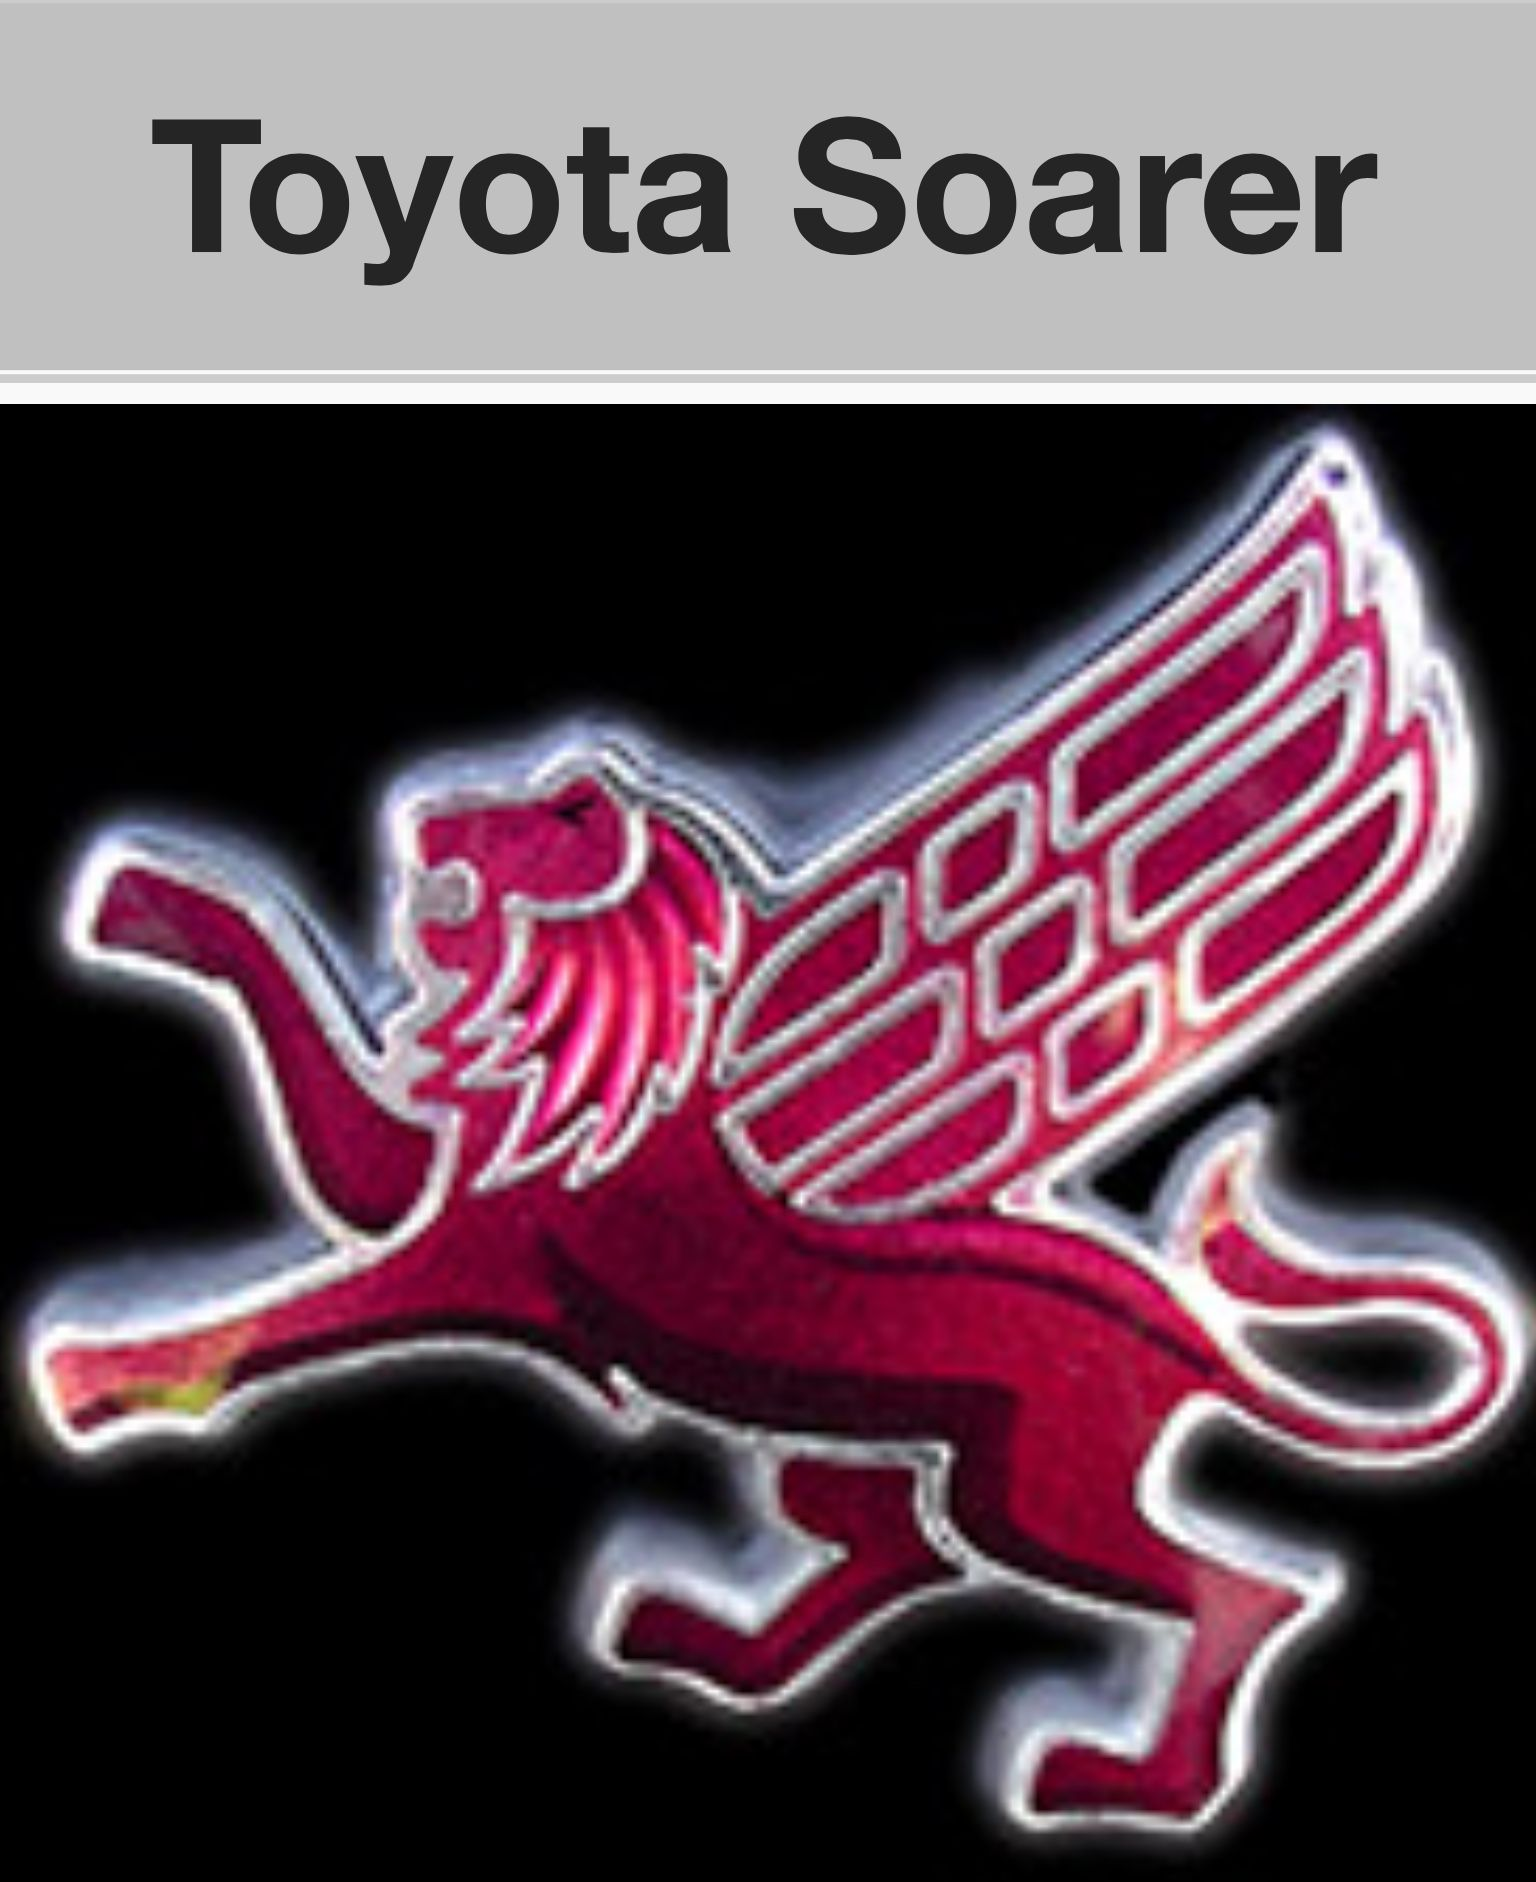 Toyota soarer these cars use a winged lion as their emblem not a toyota soarer these cars use a winged lion as their emblem not a toyota emblem biocorpaavc